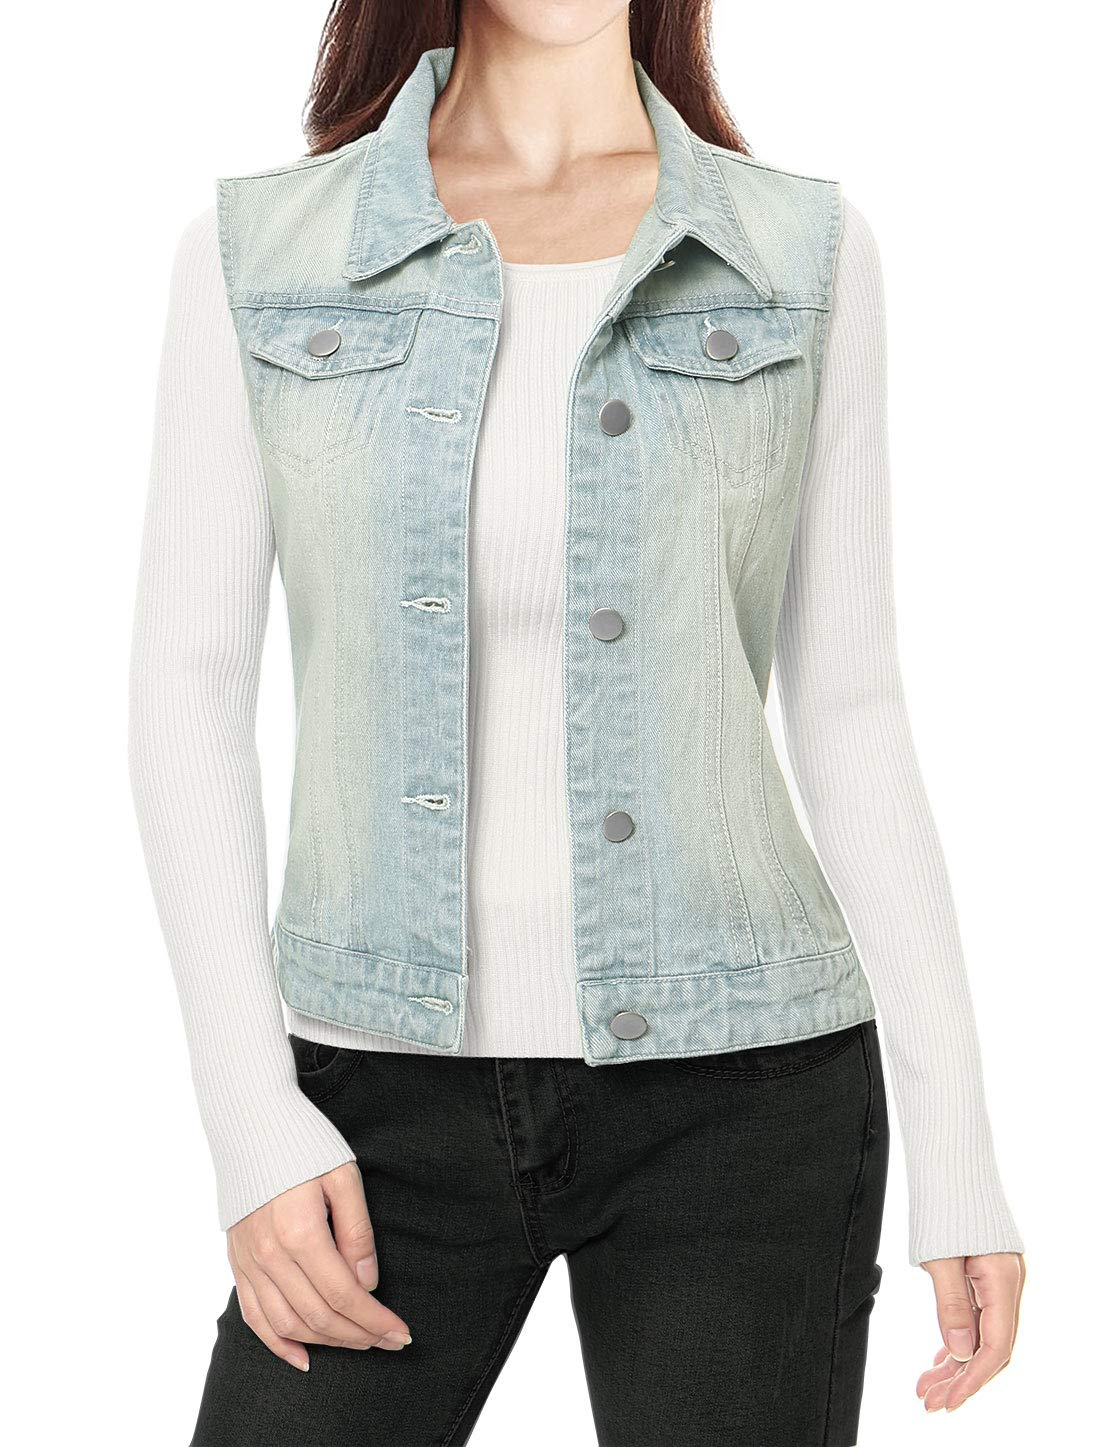 Allegra K Women's Buttoned Washed Denim Vest Waistcoat w Chest Flap Pockets s18040800it0246